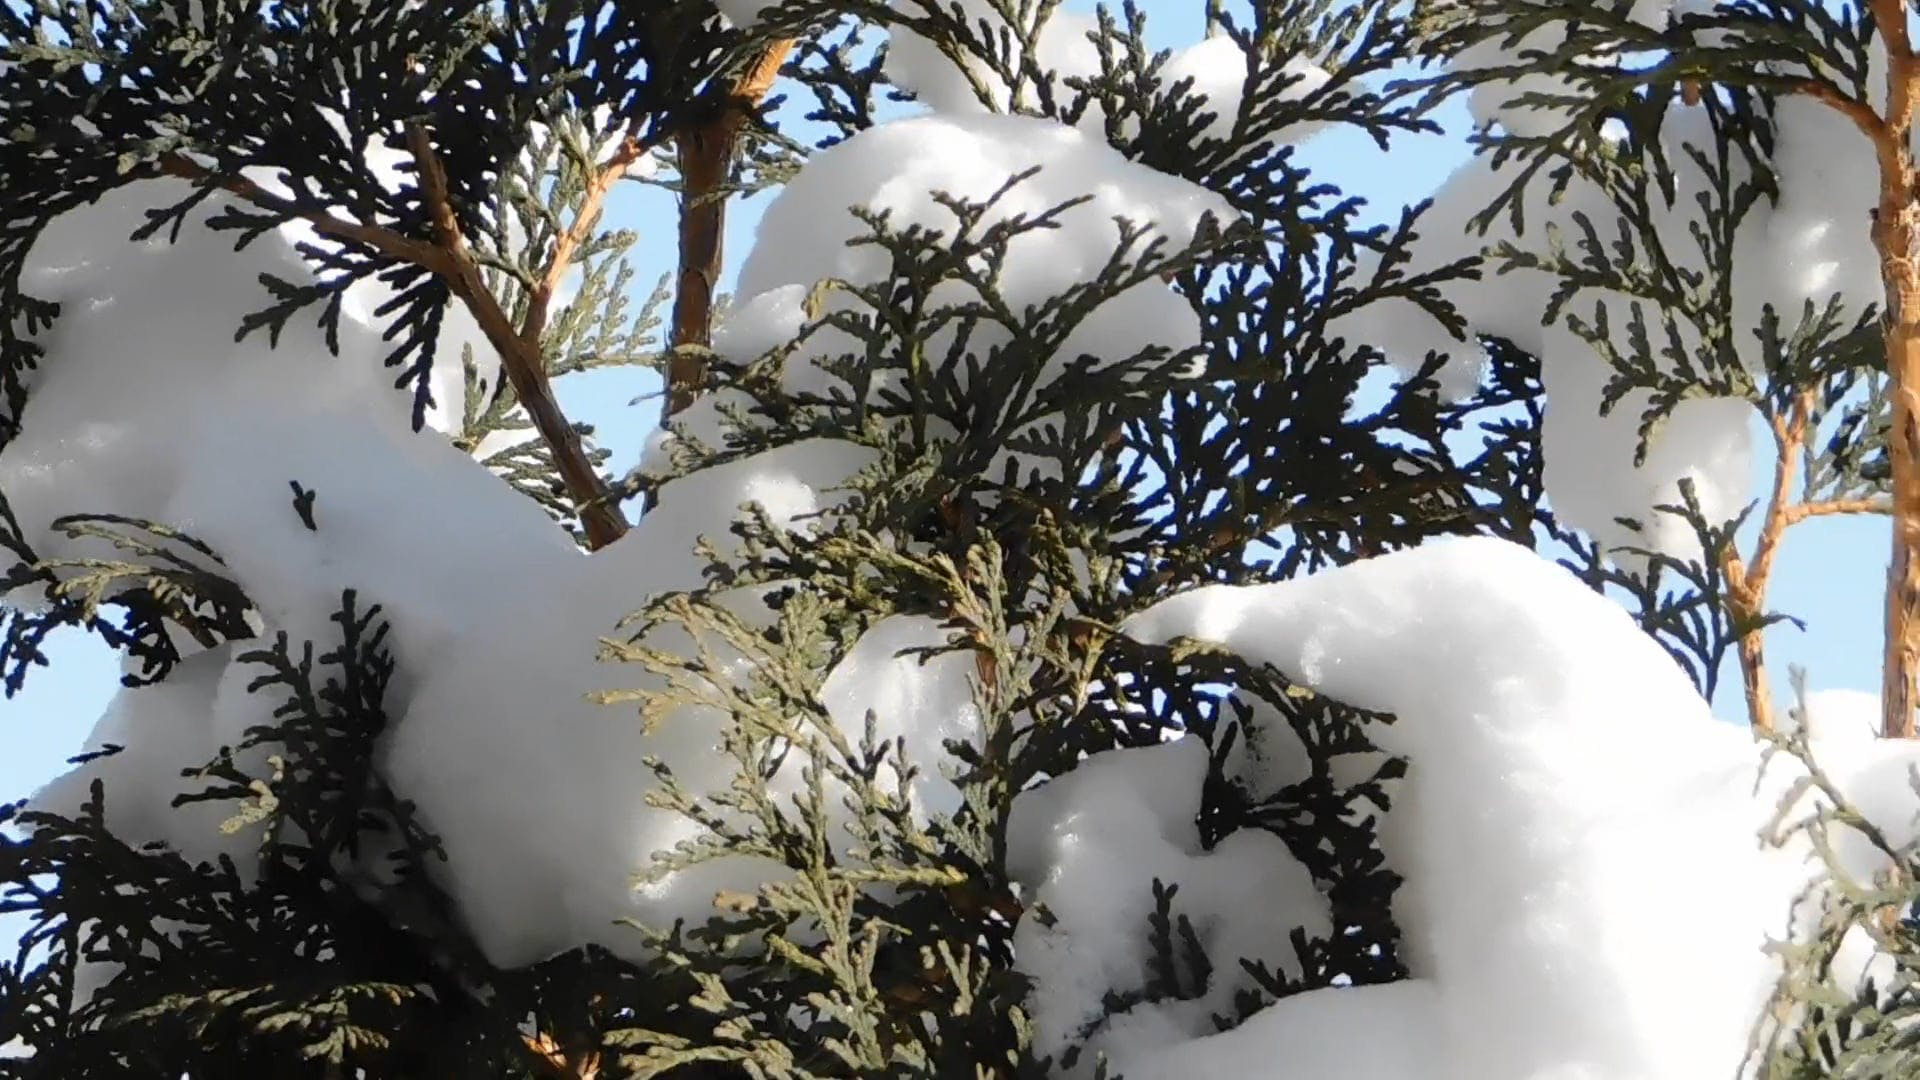 Dull Color Of Cedar At Winter